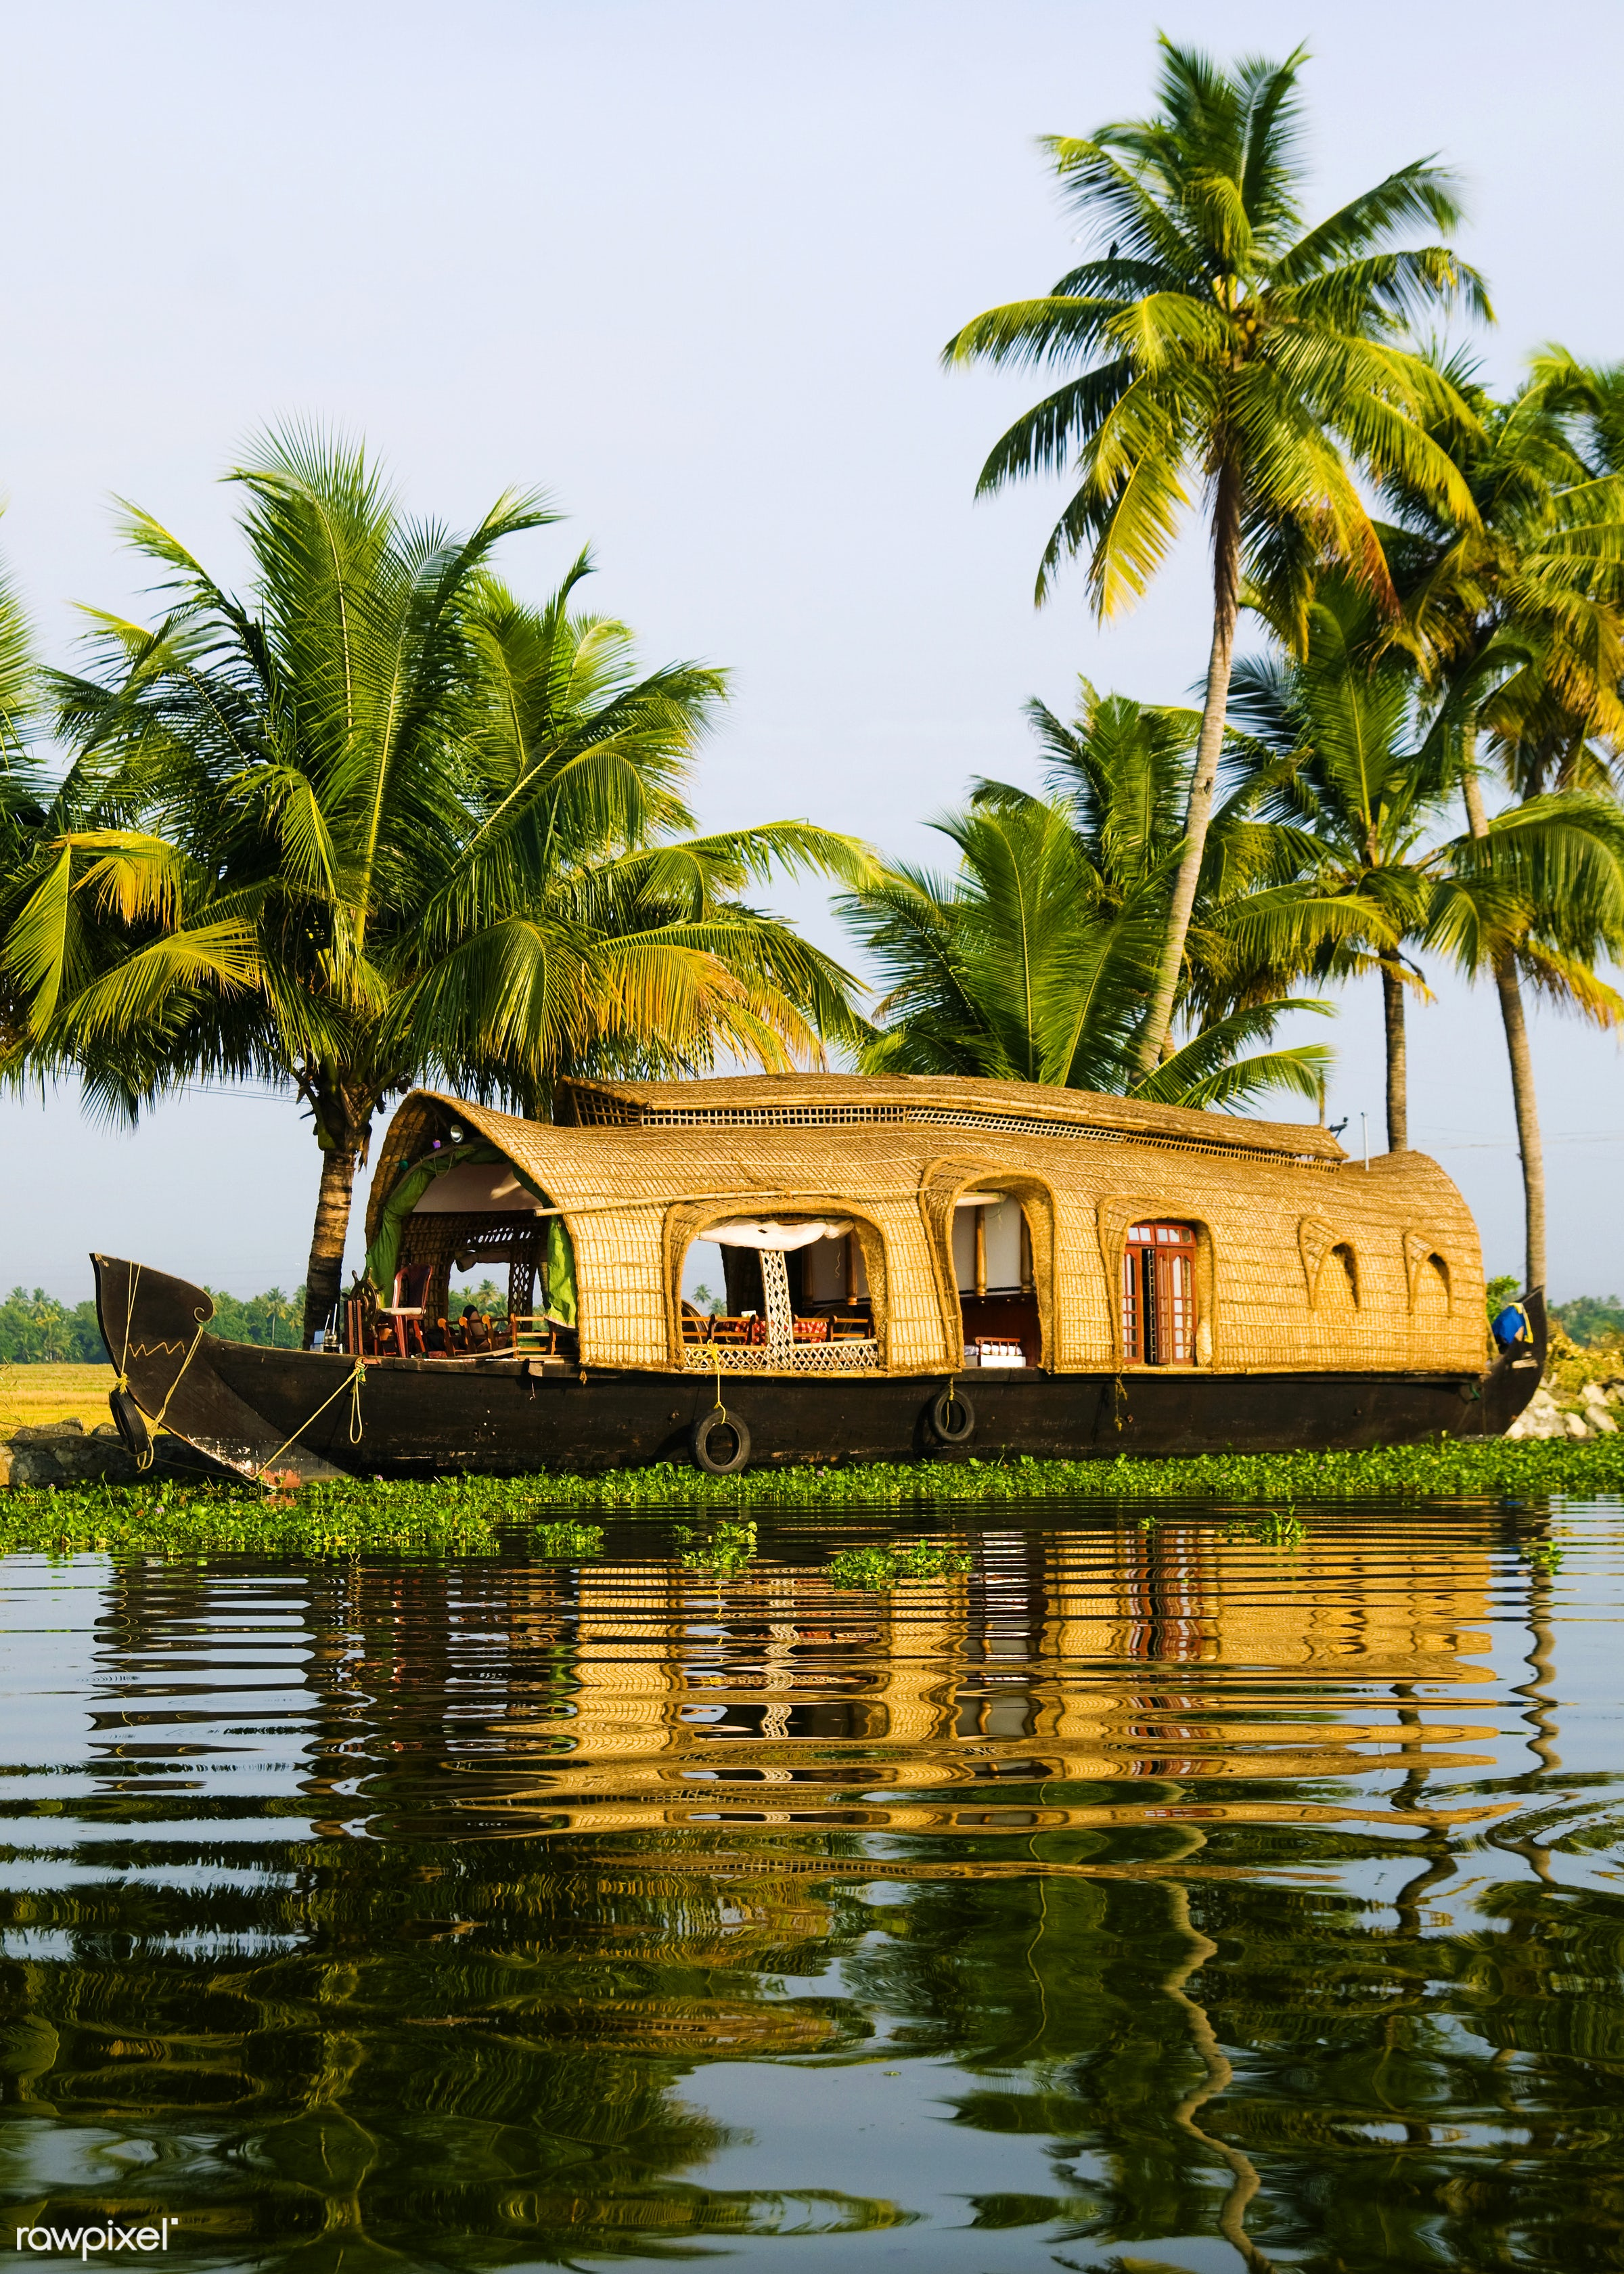 Houseboat on Kerala backwaters, Kerala, India - asia, backwater, canal, coconut palm tree, cruise ship, day, ferry, floating...